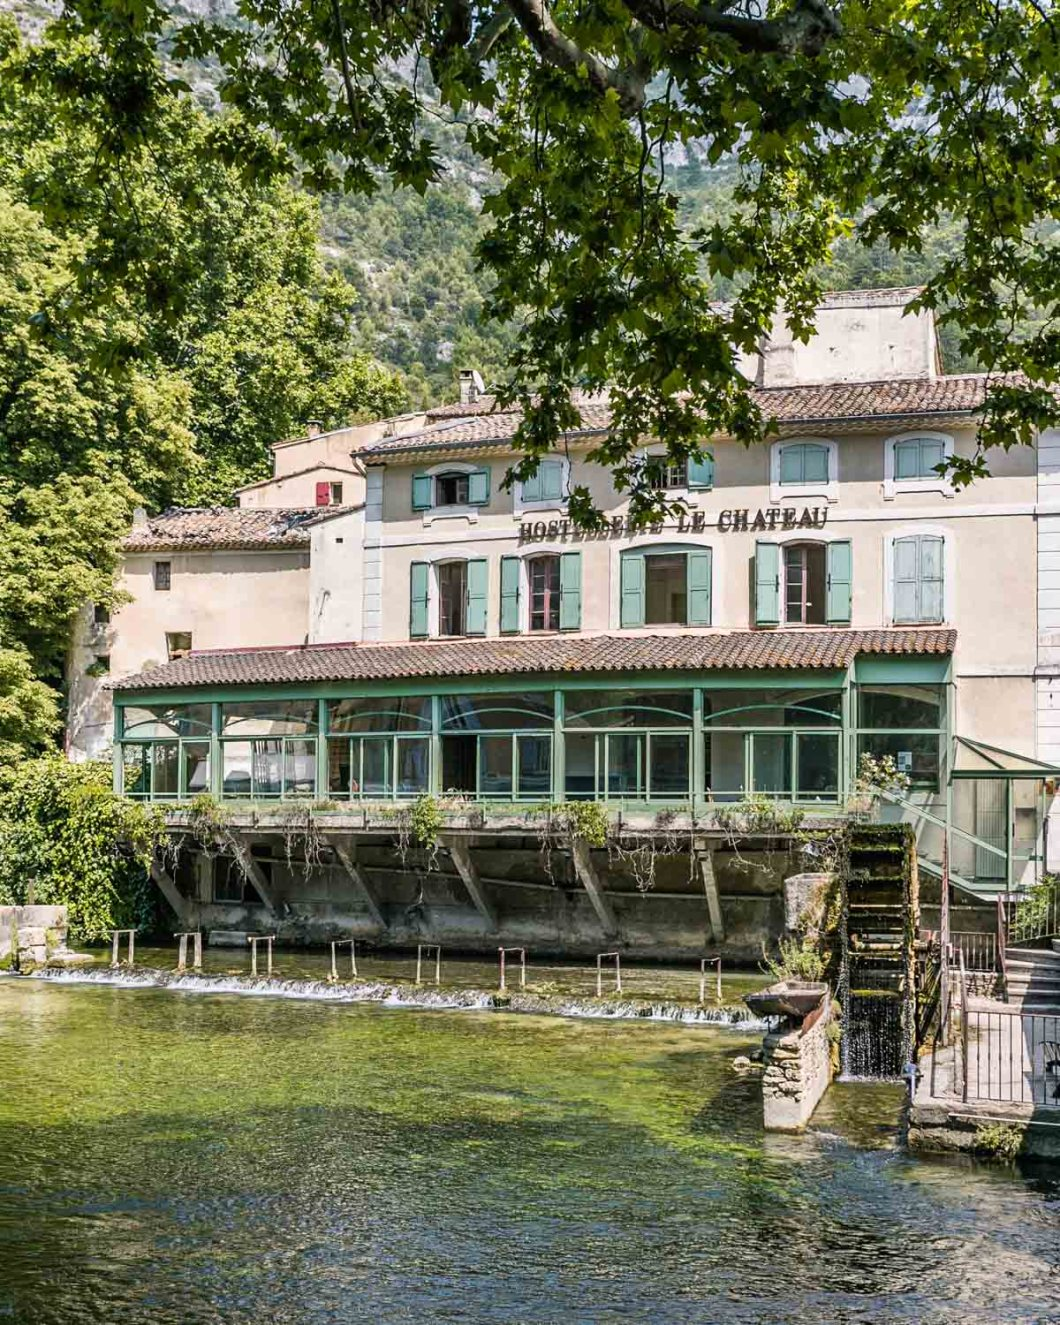 The village of Fontaine-de-Vaucluse in Provence